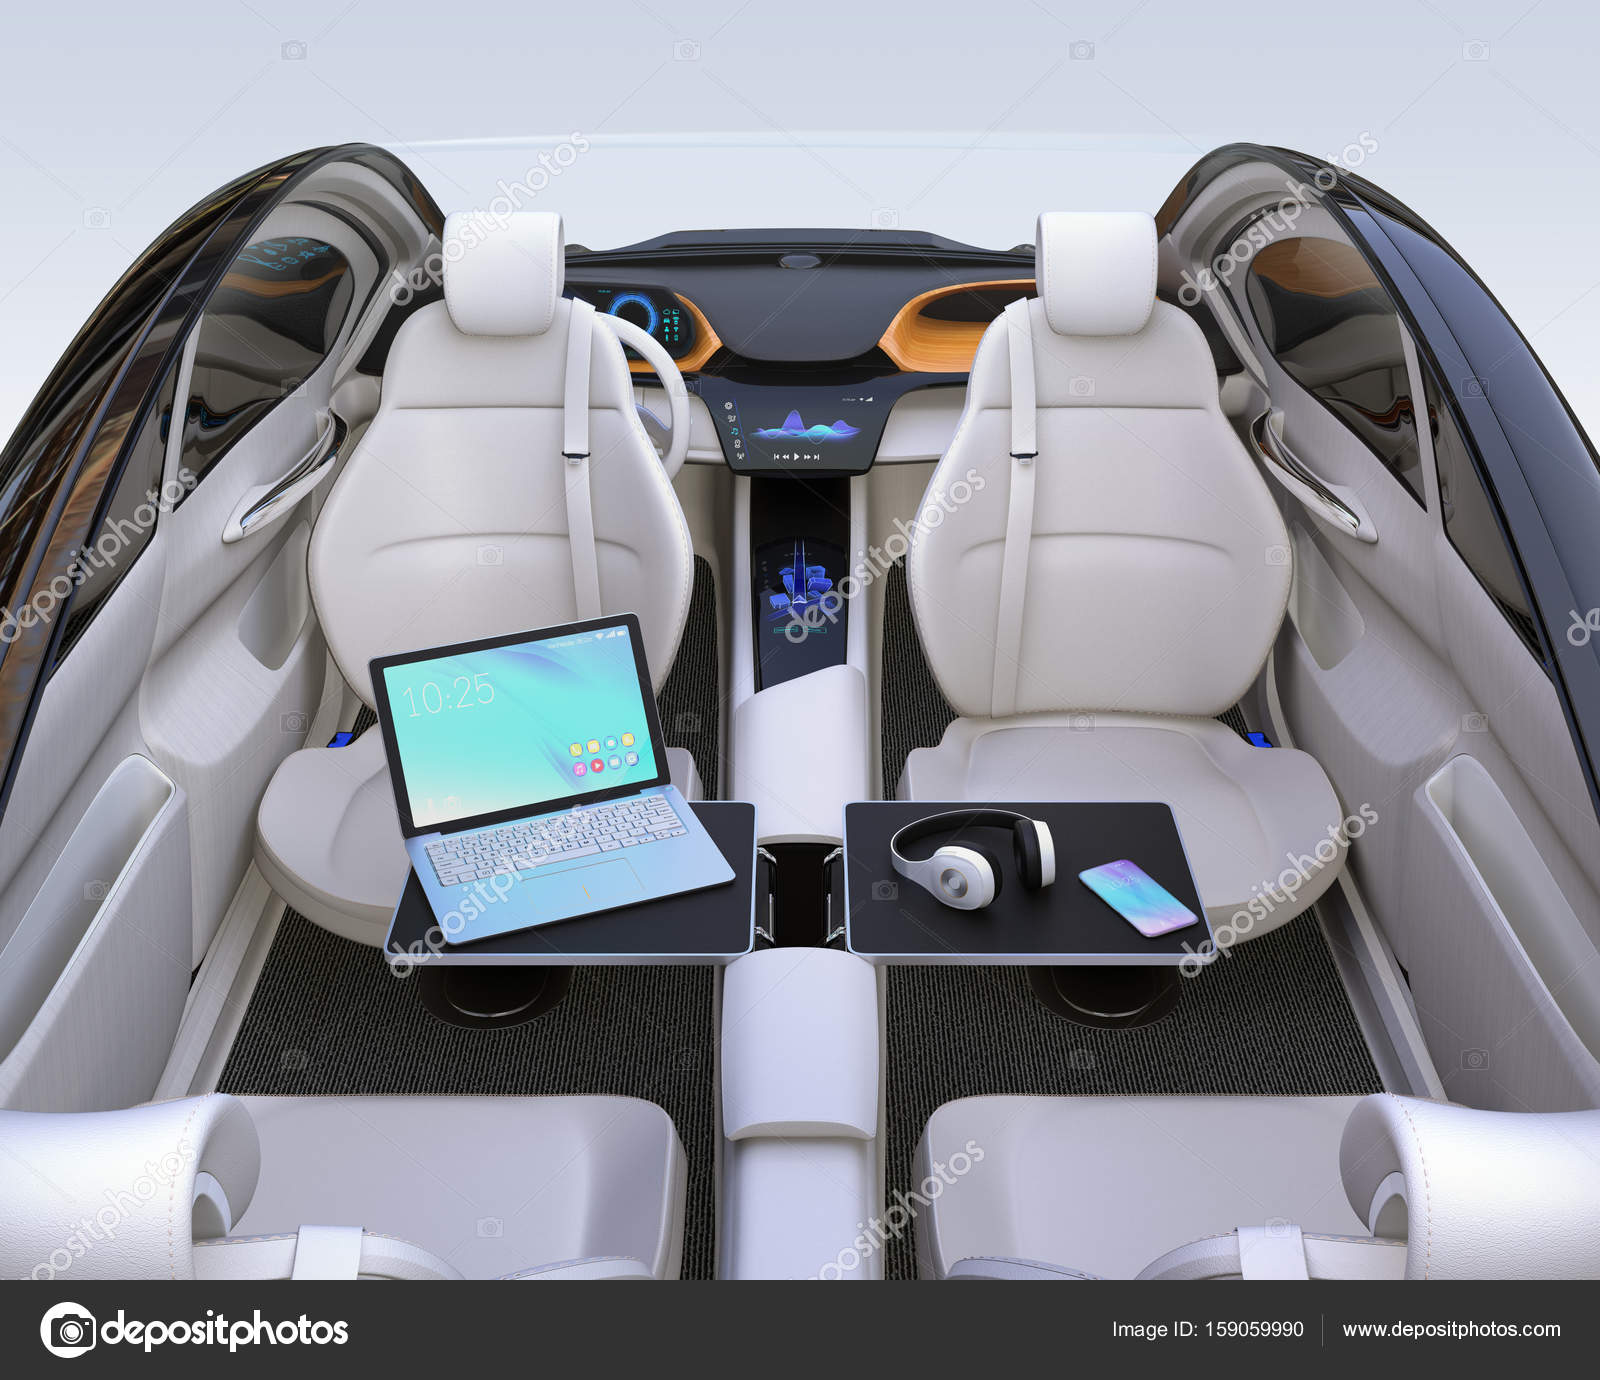 autonomous car interior concept stock photo chesky w 159059990. Black Bedroom Furniture Sets. Home Design Ideas